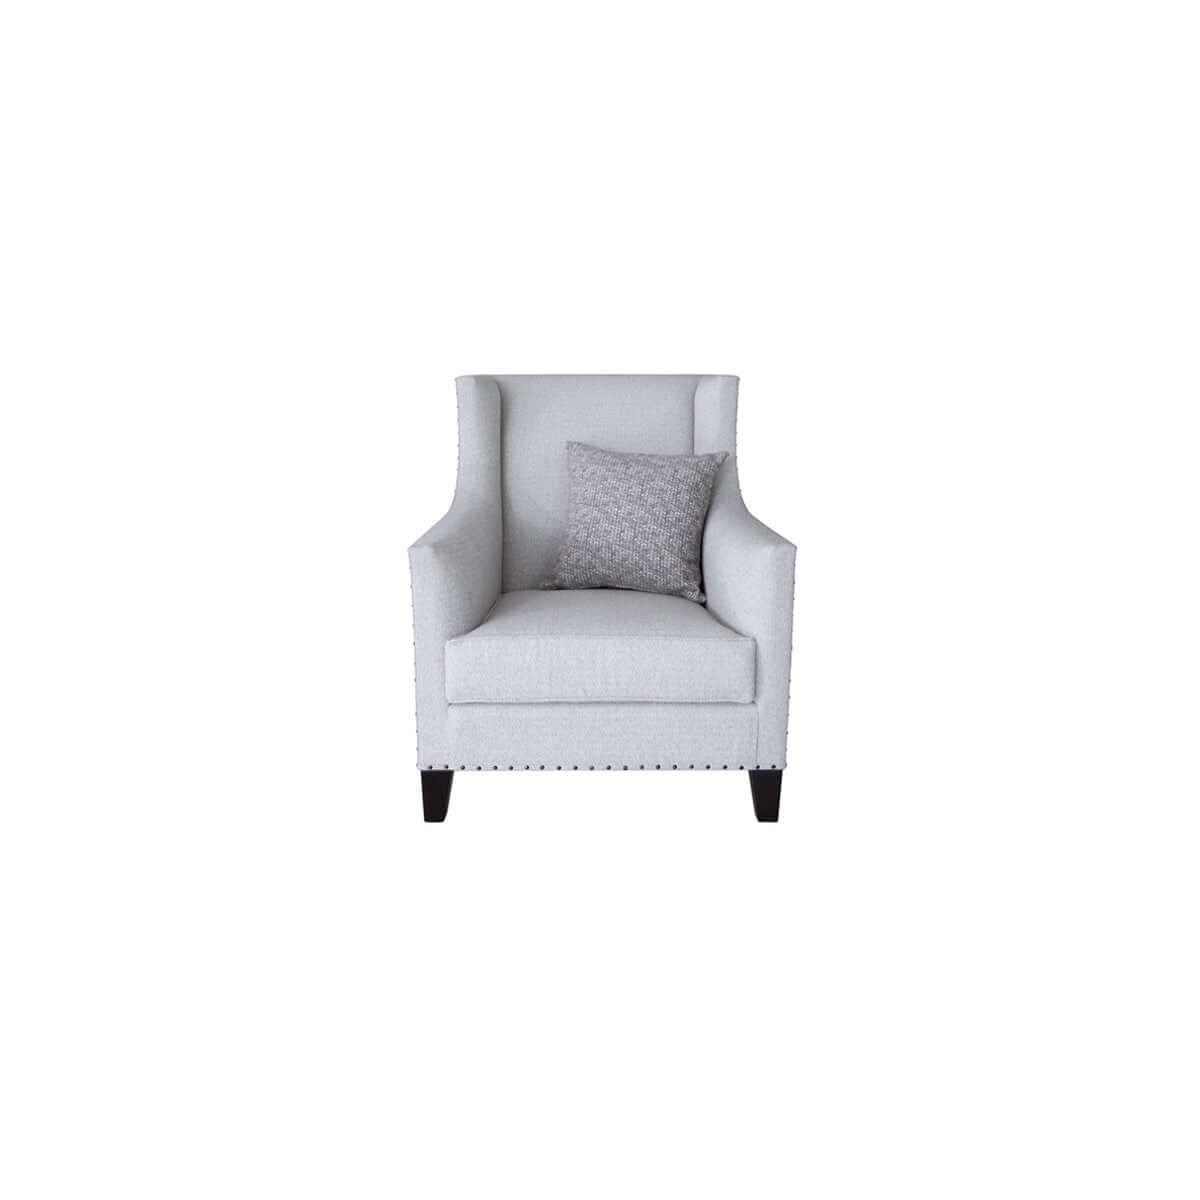 Ricard one seat sofa, classic design refined modern style